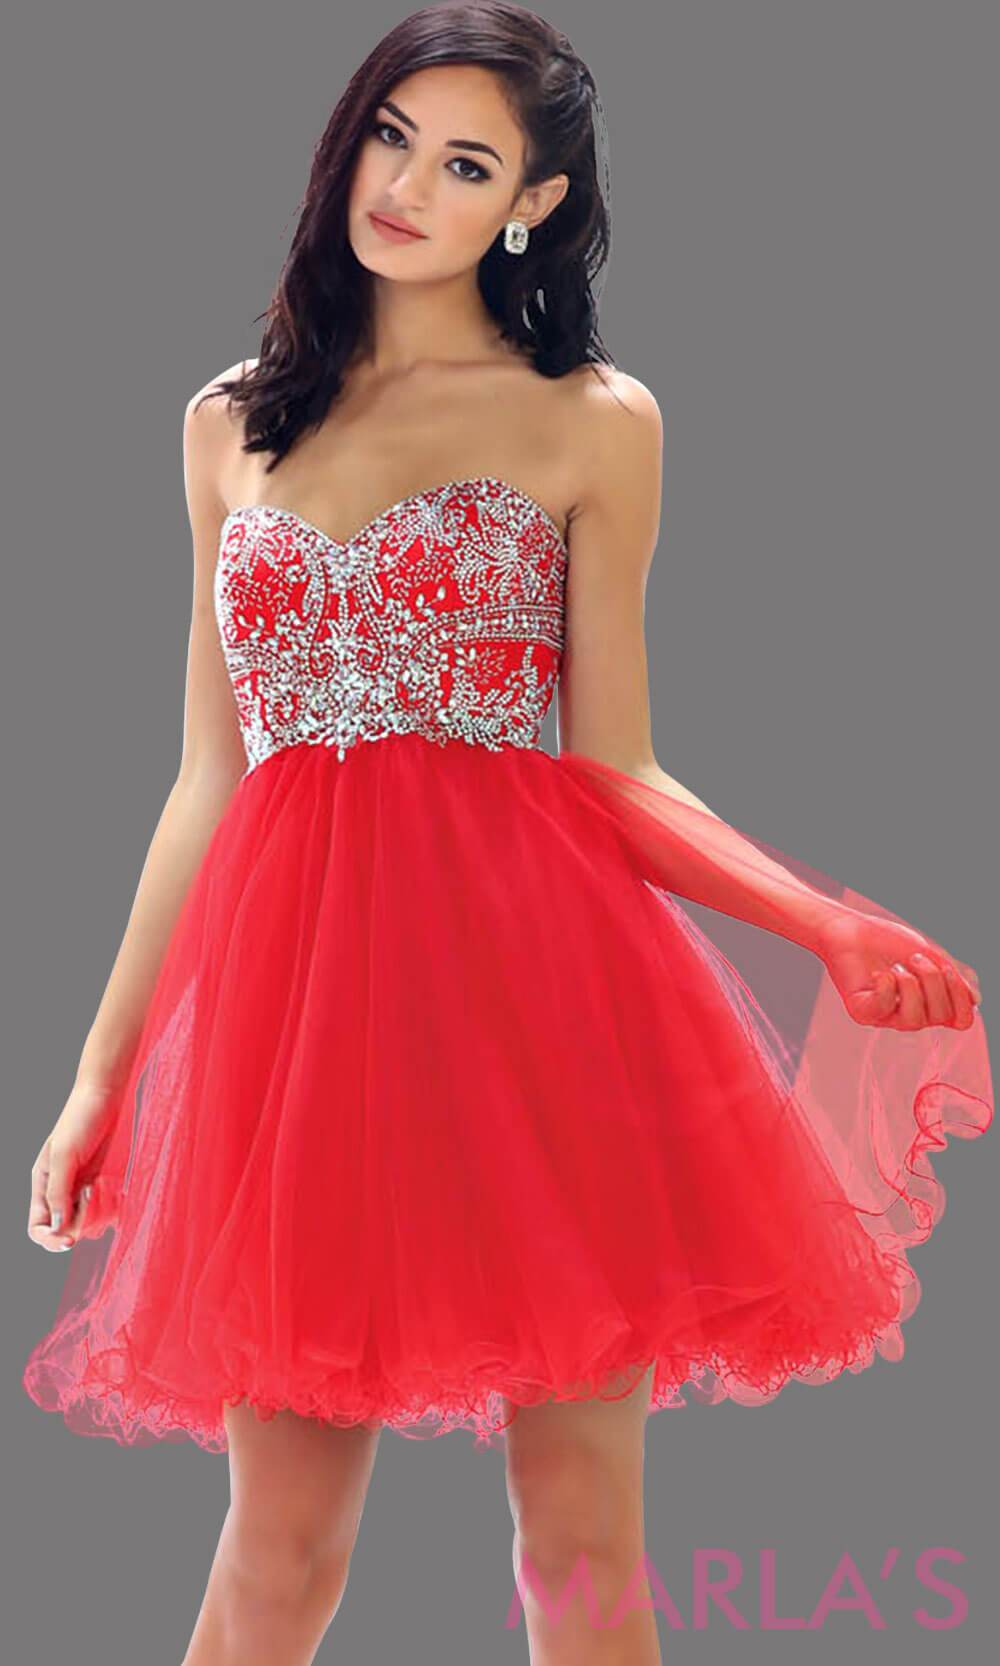 Short strapless puffy red dress. This short red grade 8 graduation dress has sequin bodice and corset back. This is perfect for homecoming, semi formal, bridal shower. Available in plus sizes